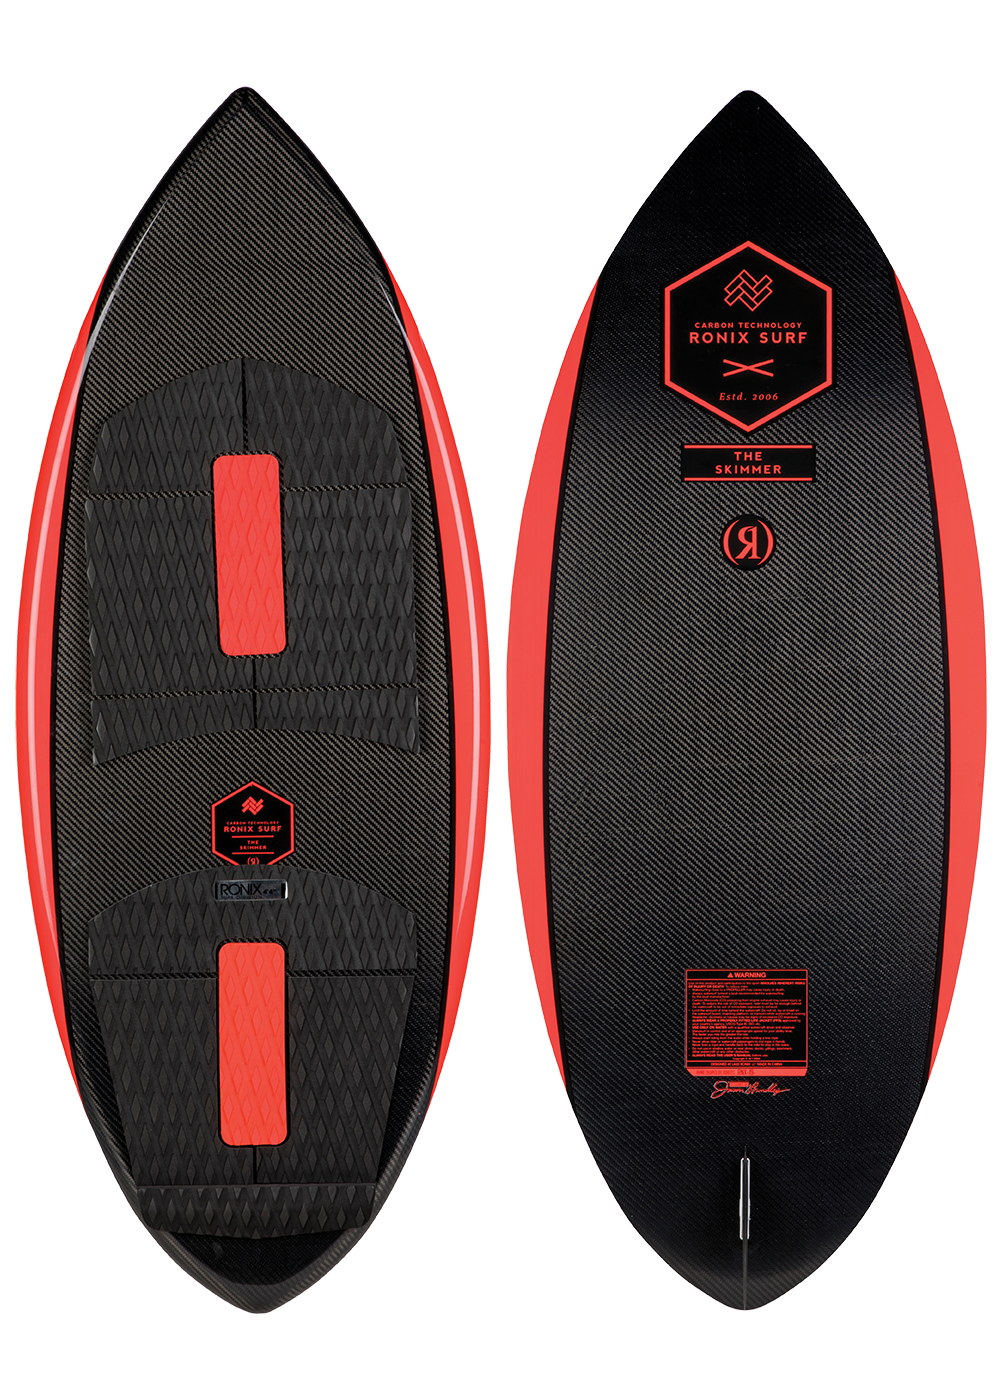 2019 Ronix Carbon Air Core 3 Skimmer Wakesurf Board